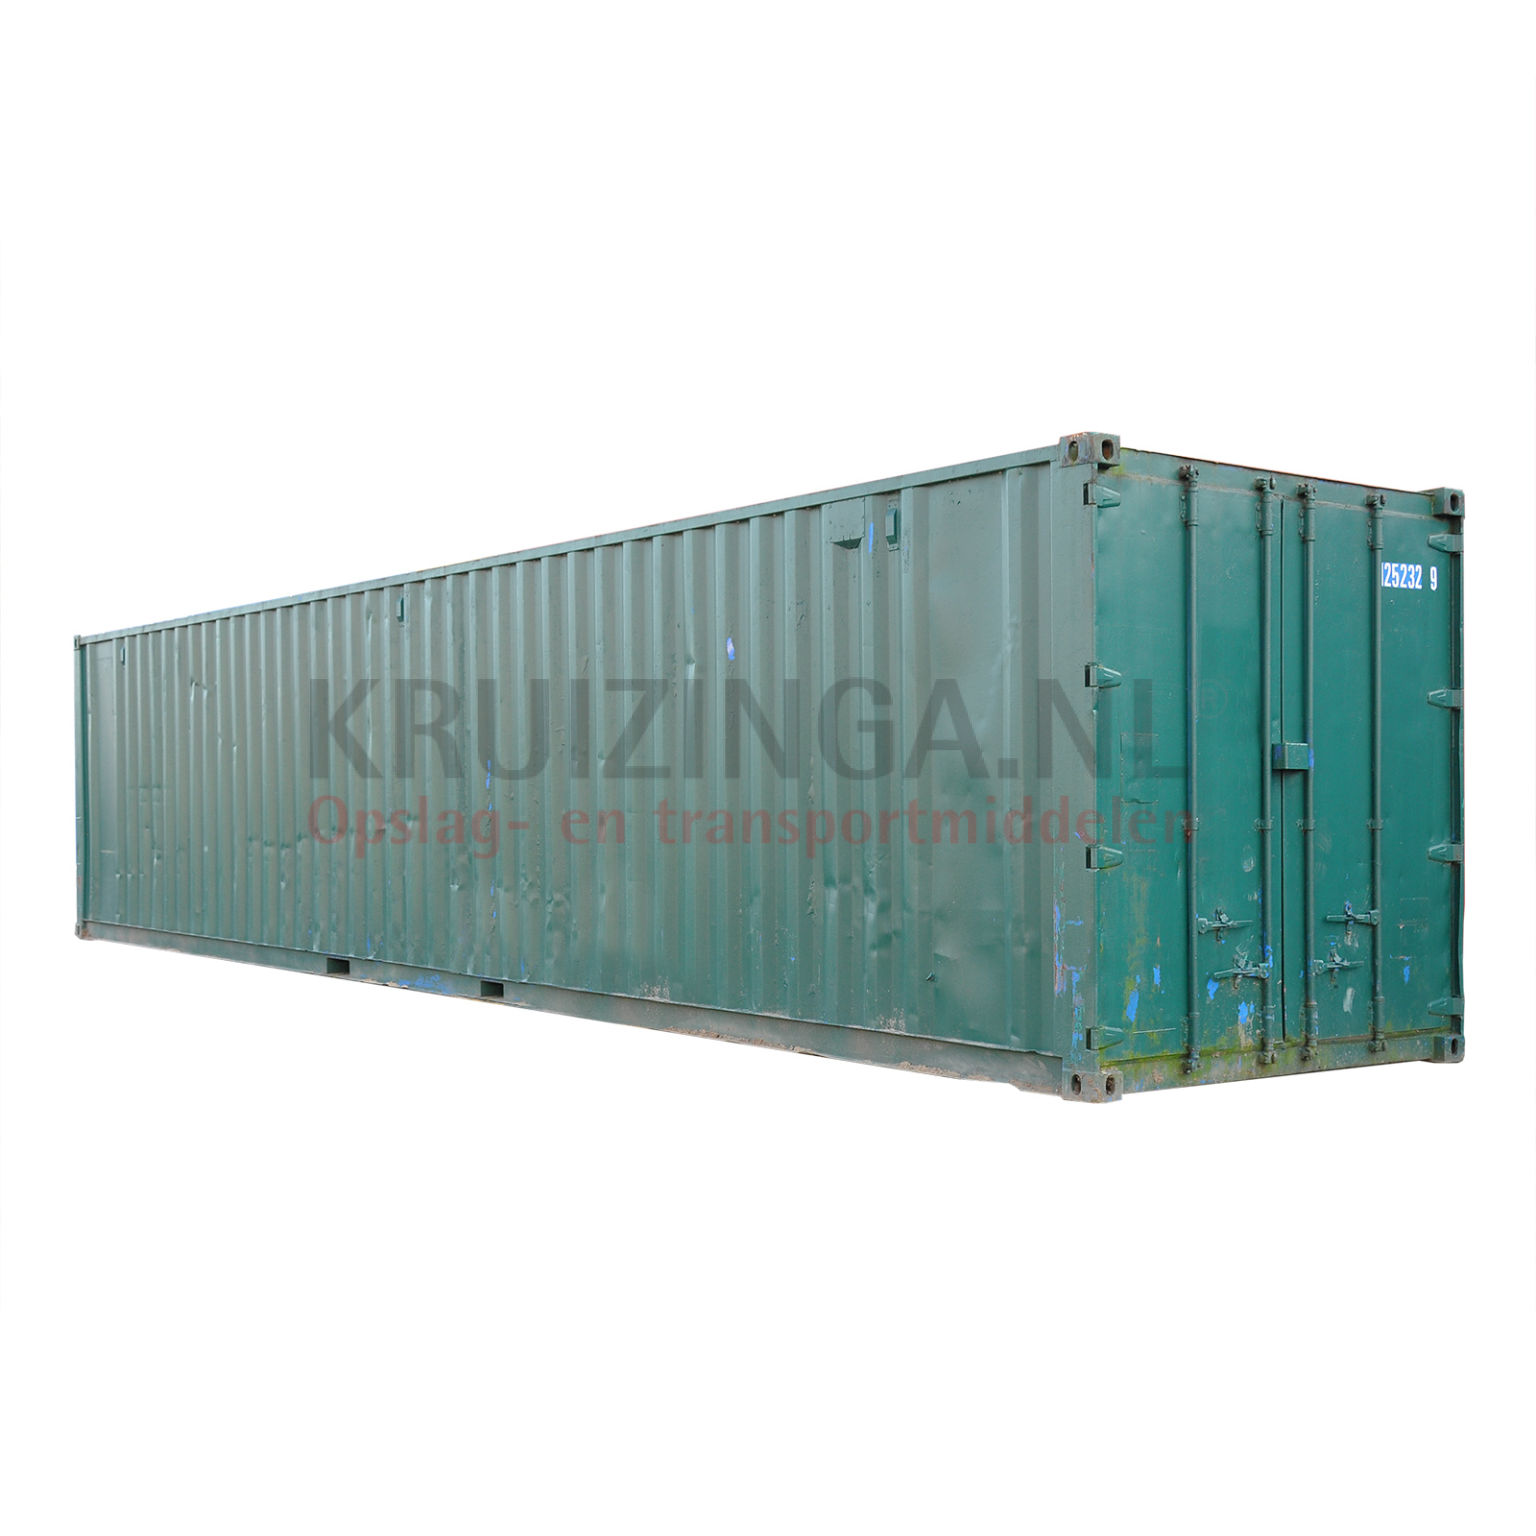 container materieelcontainer 40 ft gebruikt. Black Bedroom Furniture Sets. Home Design Ideas